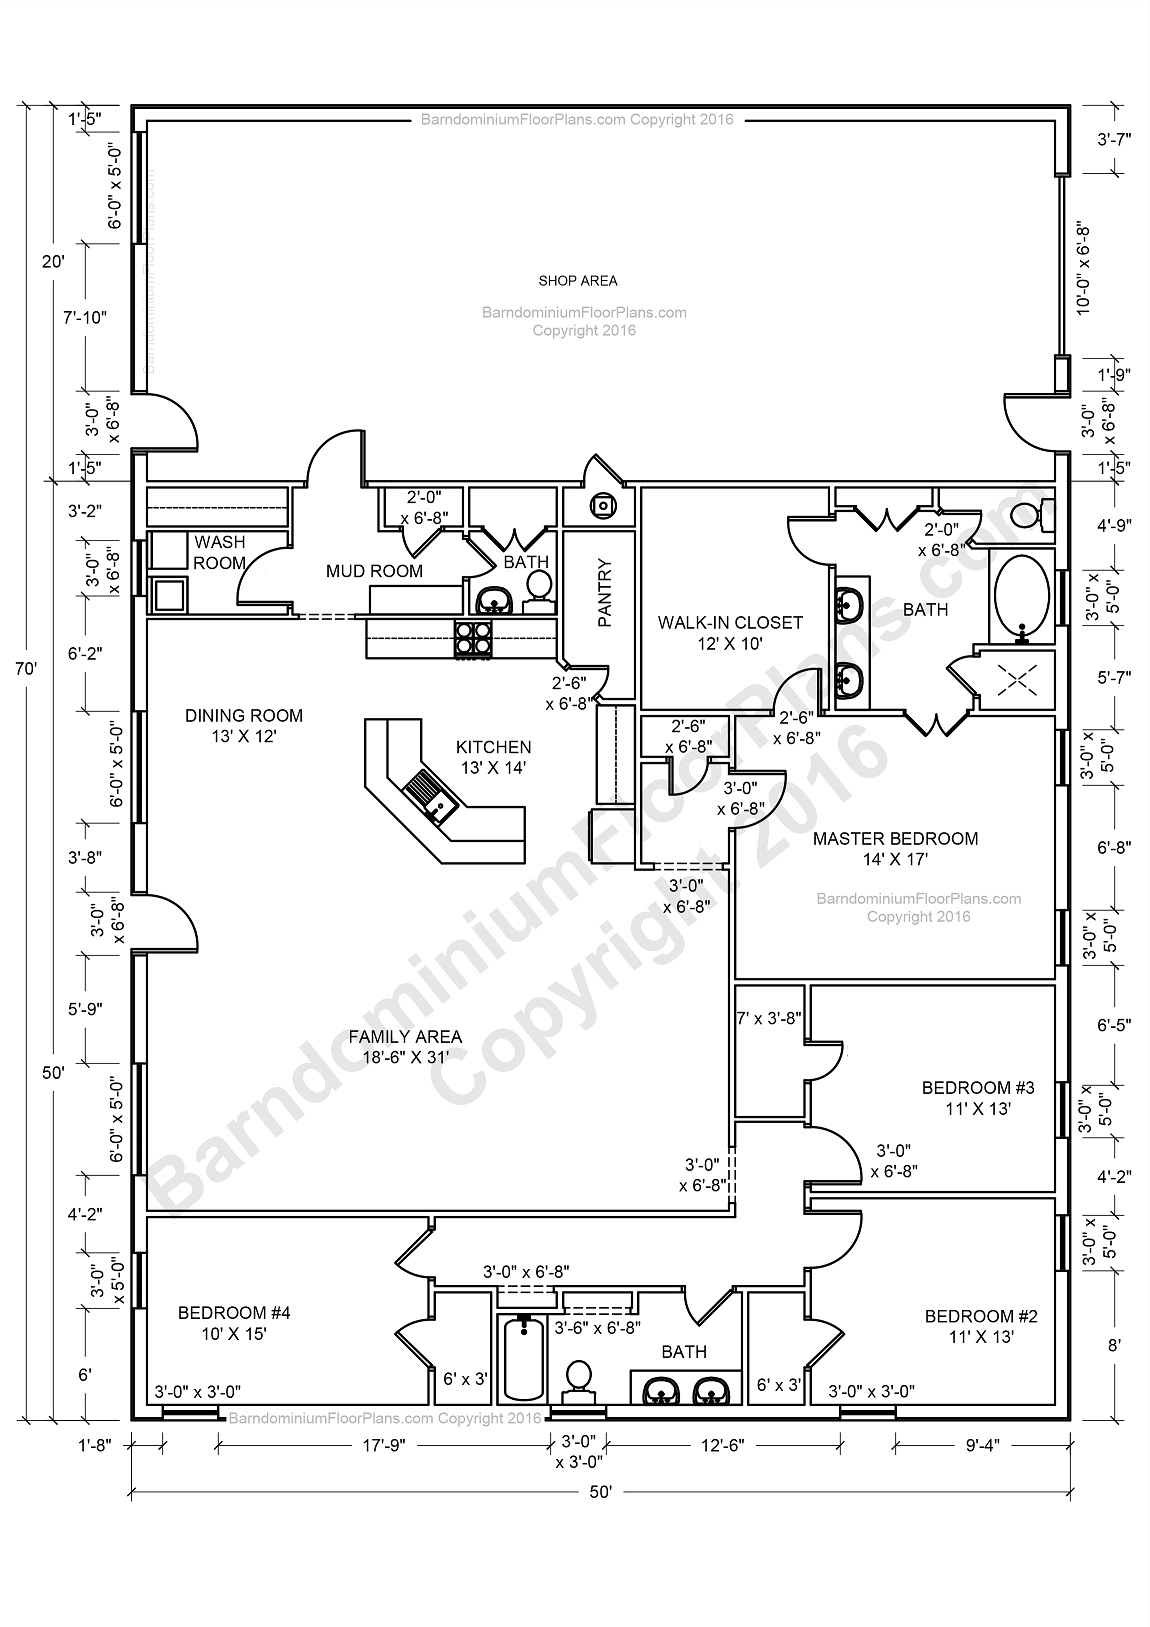 Barndominium floor plans barndominium floor plans 1 800 for Pole barn houses floor plans